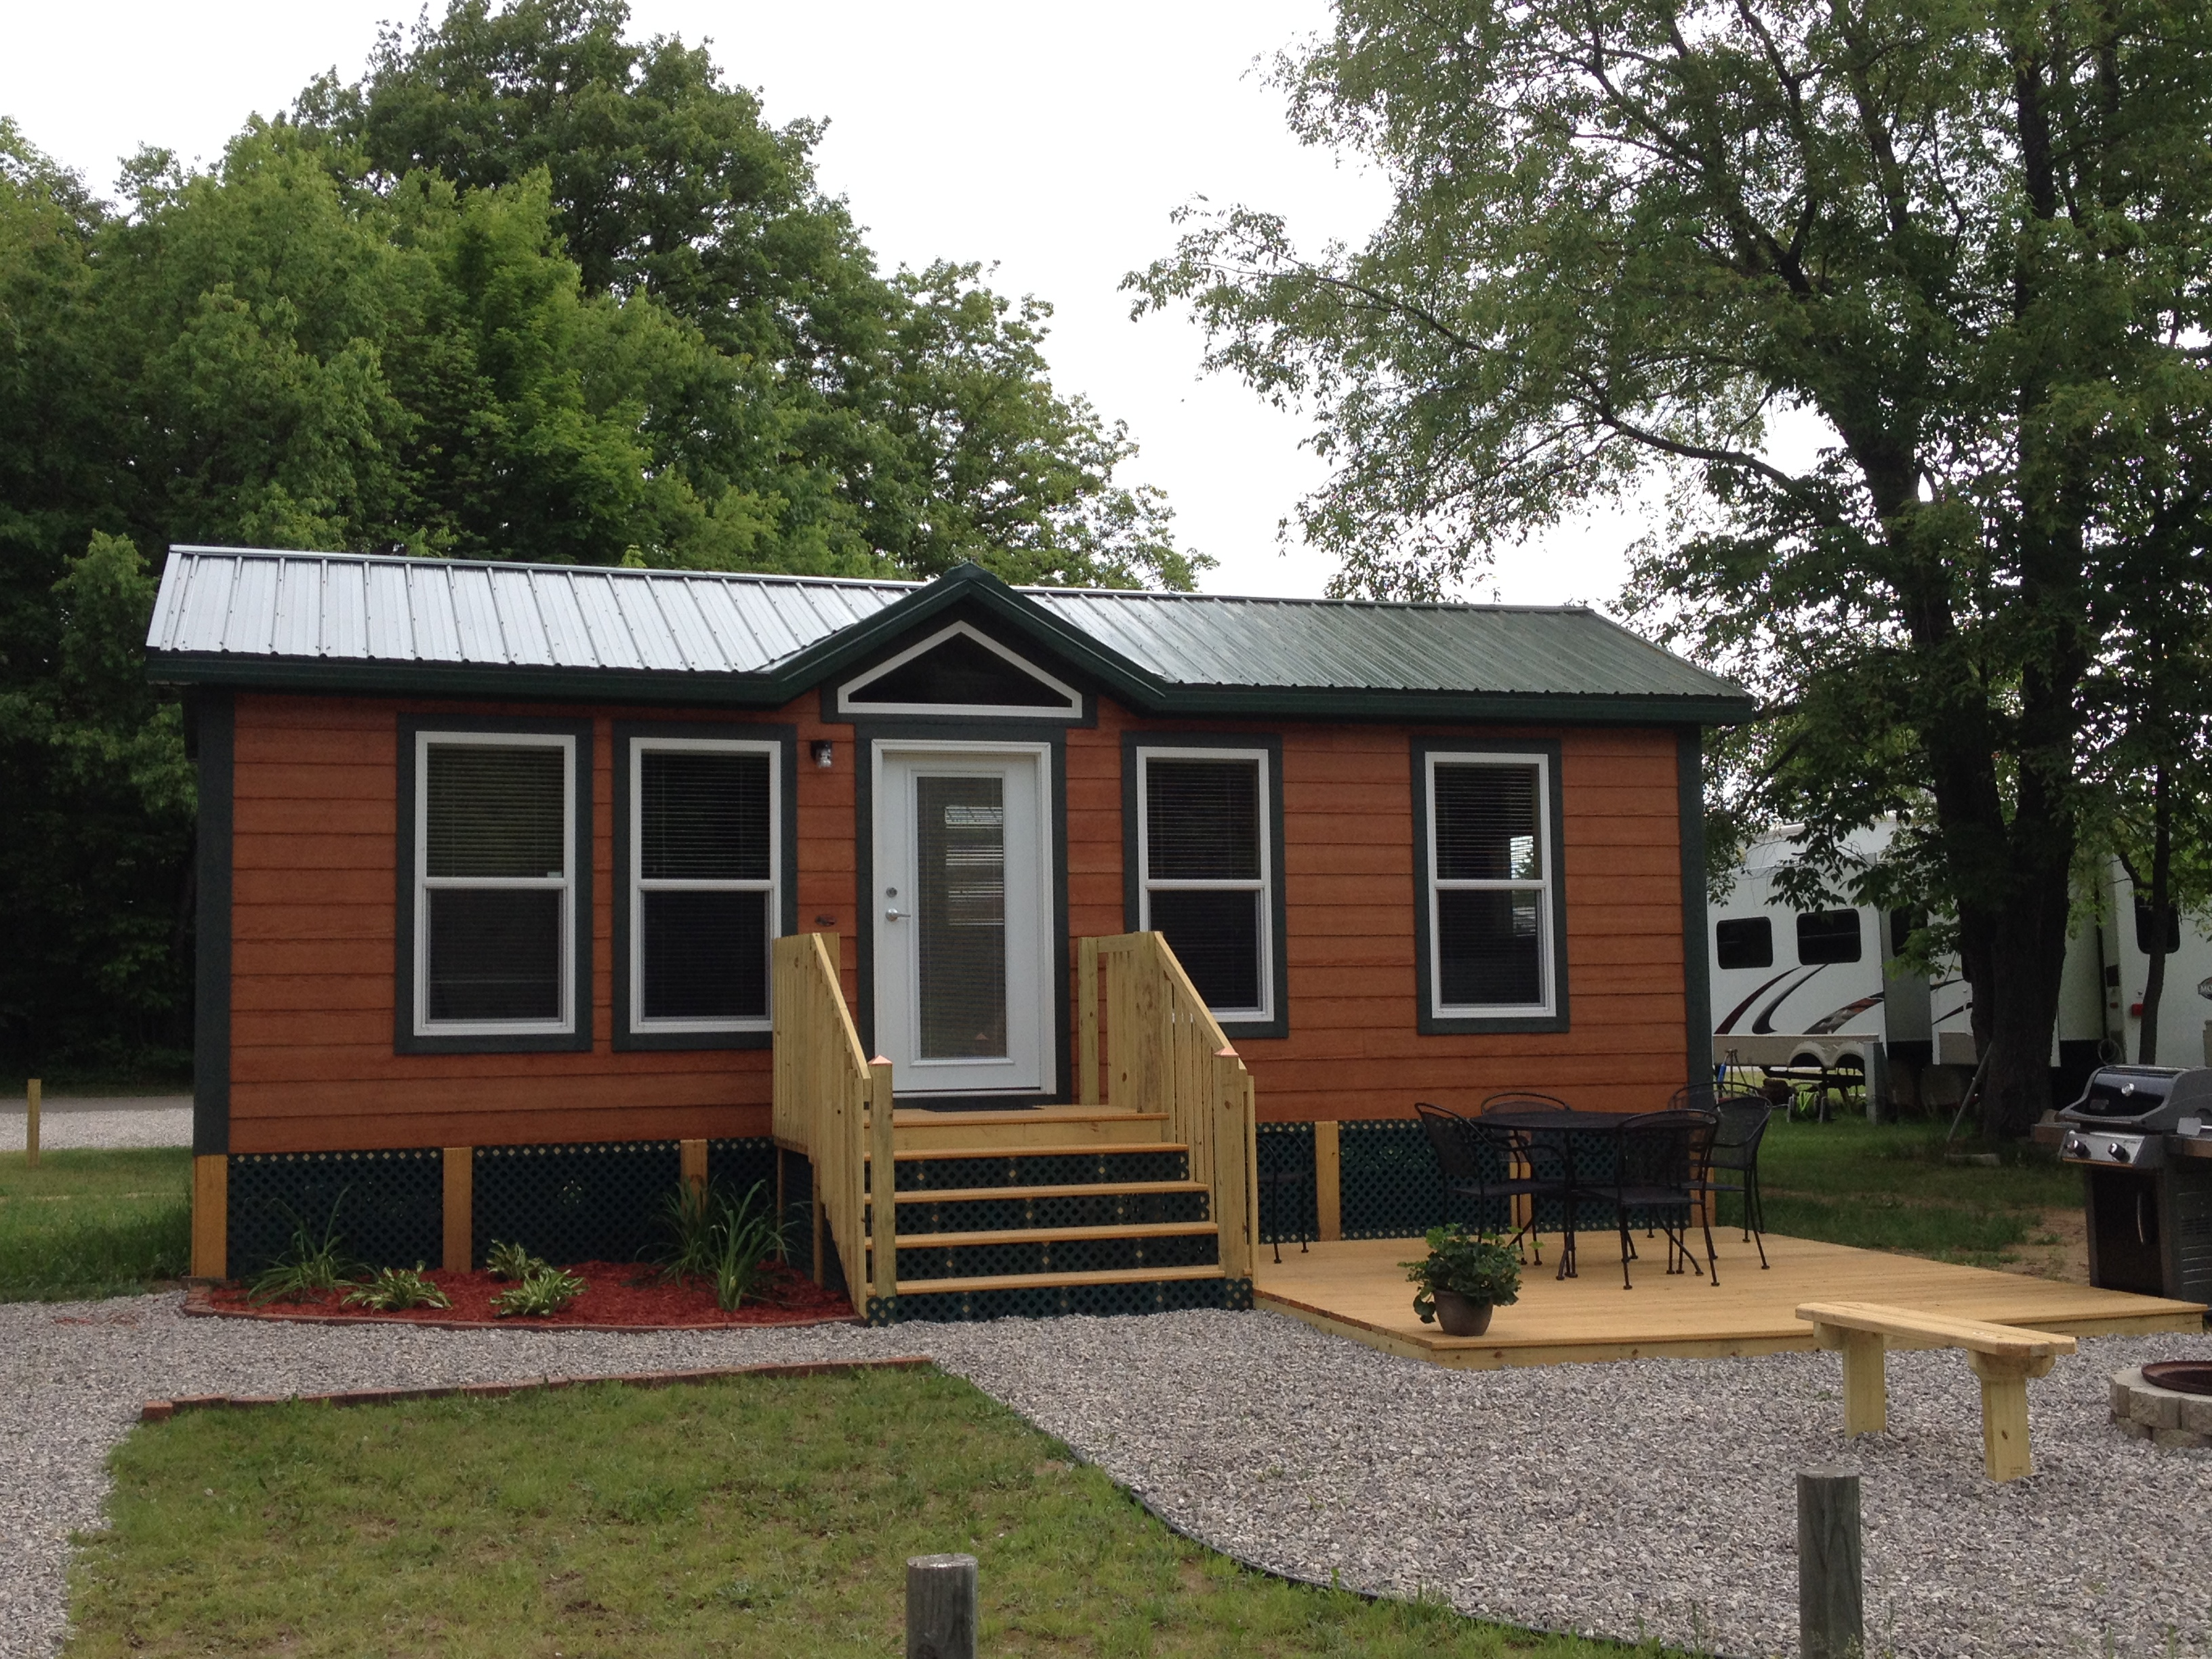 rent cabins for cabin sational pigeon cottages rental sevierville in forge traverse bedroom city view sun cottage